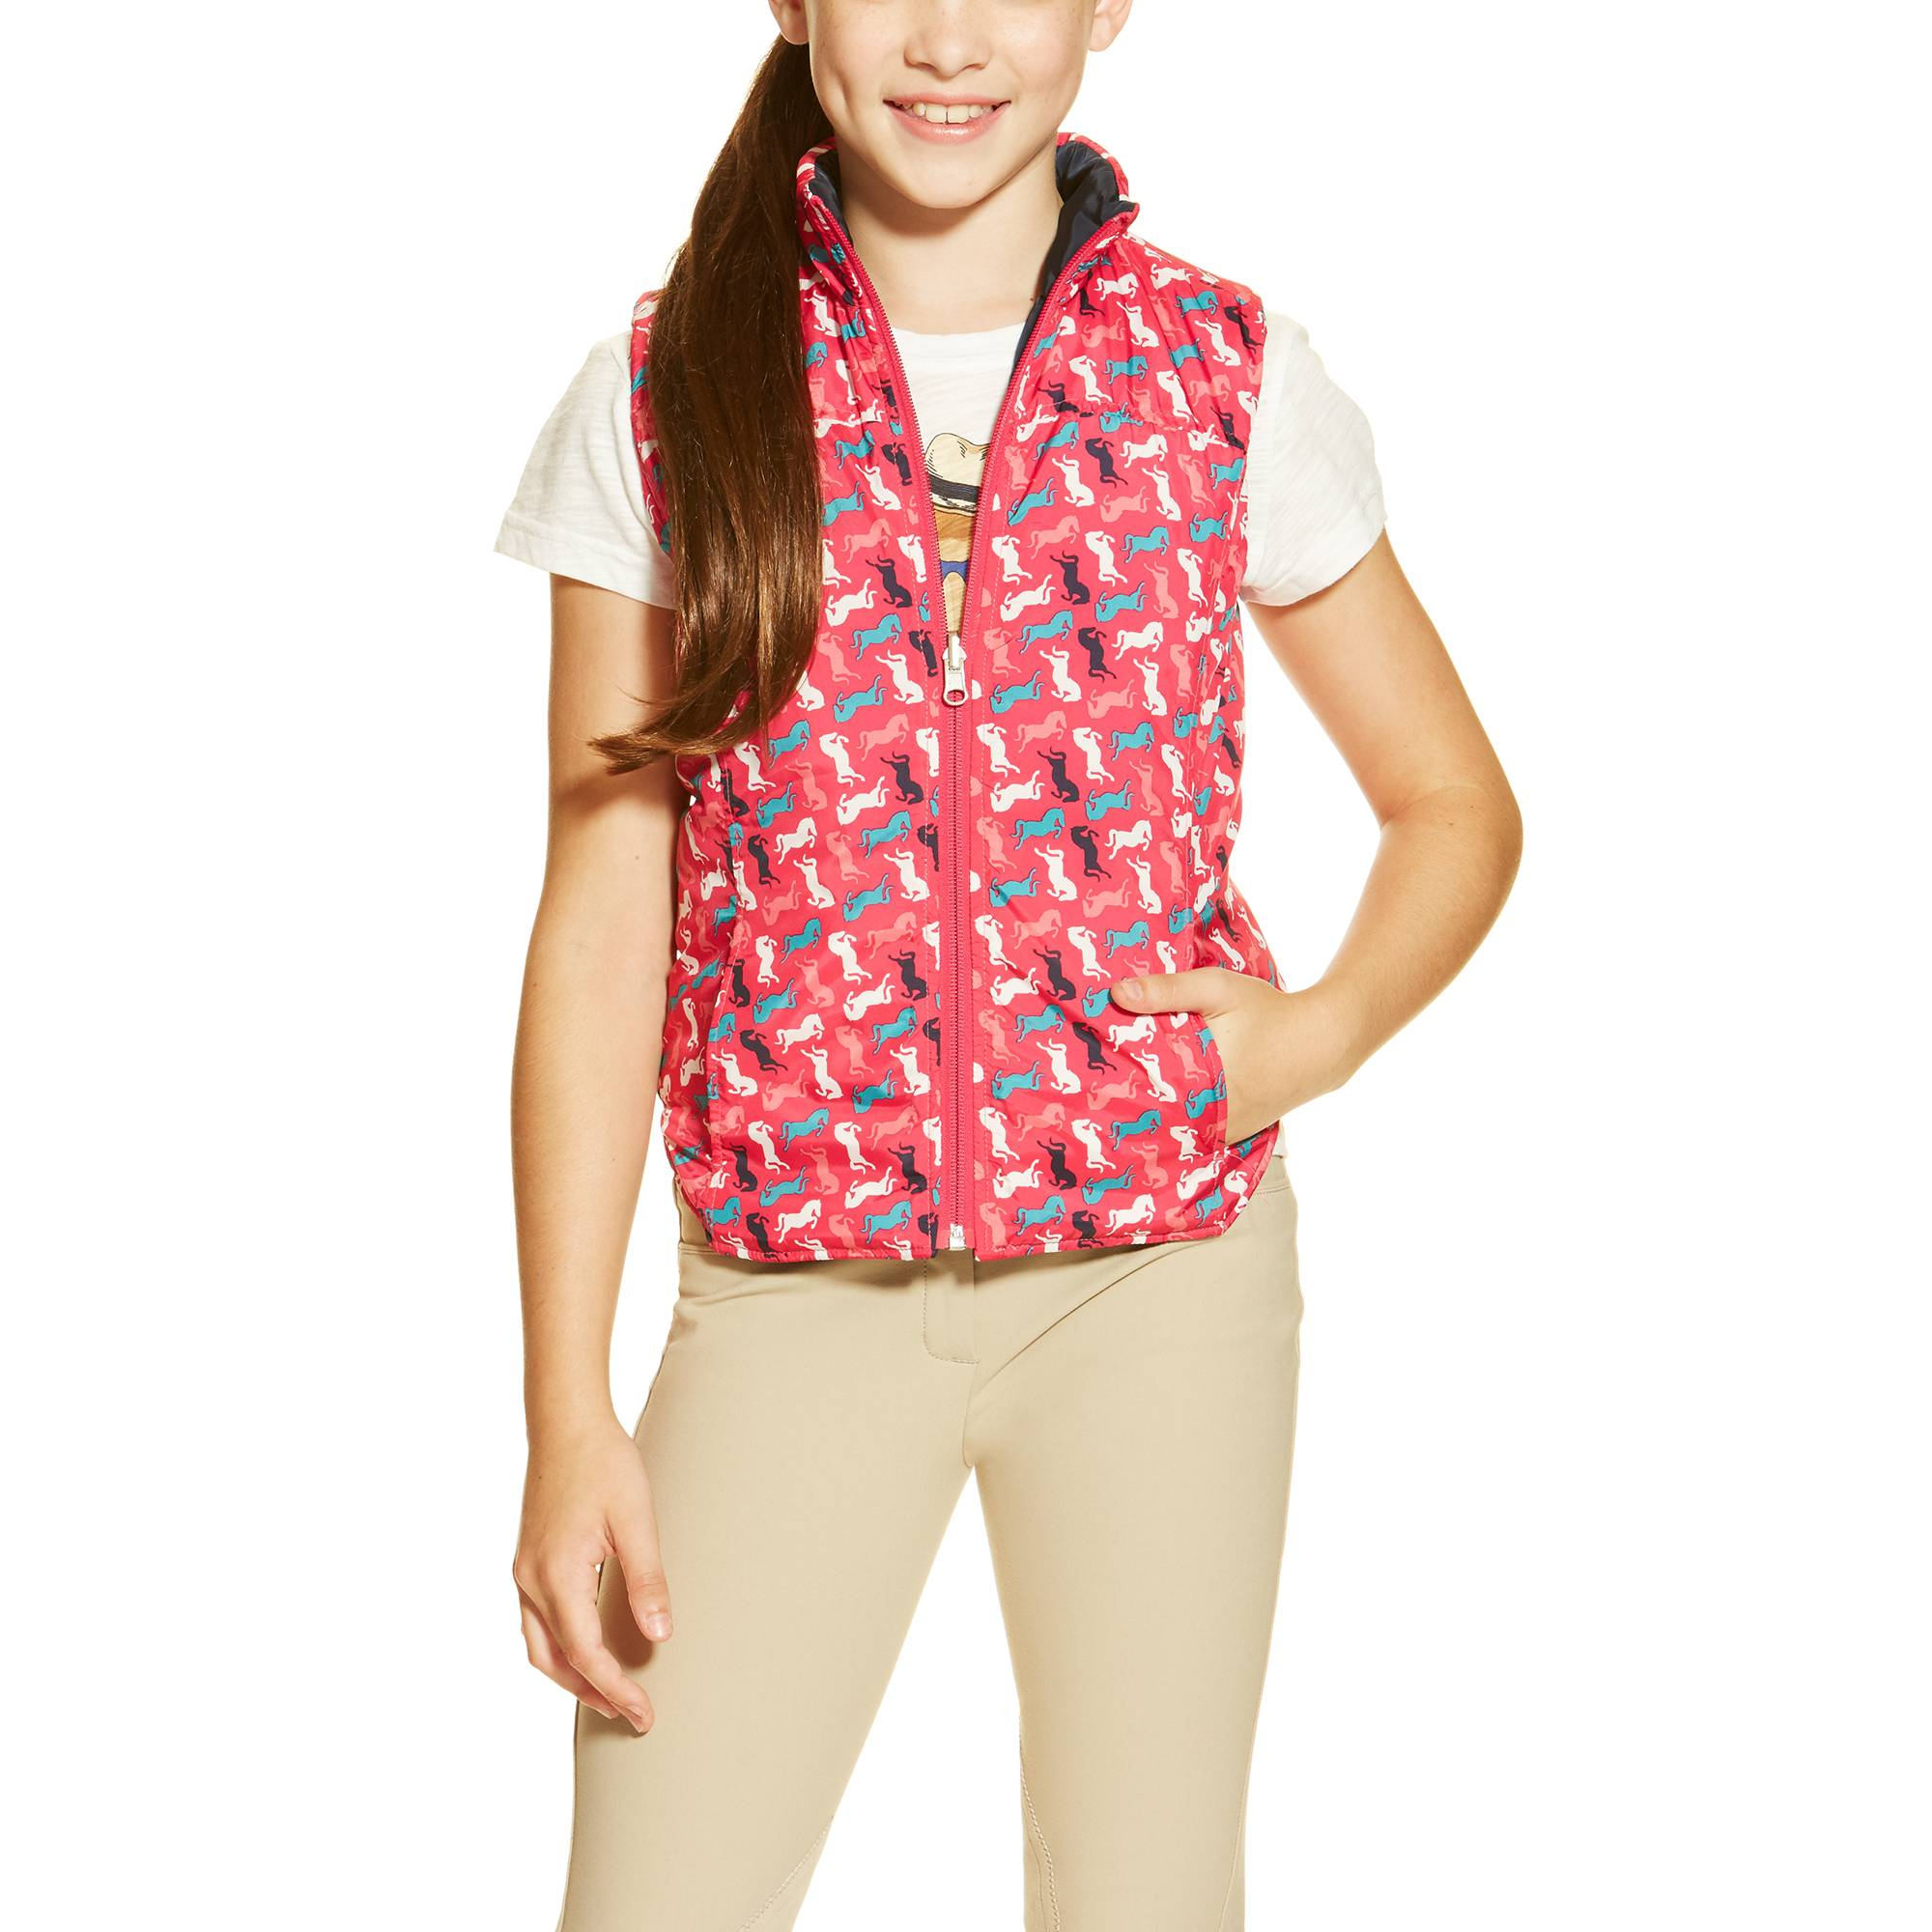 Ariat Girl's Emma Vest - Multi